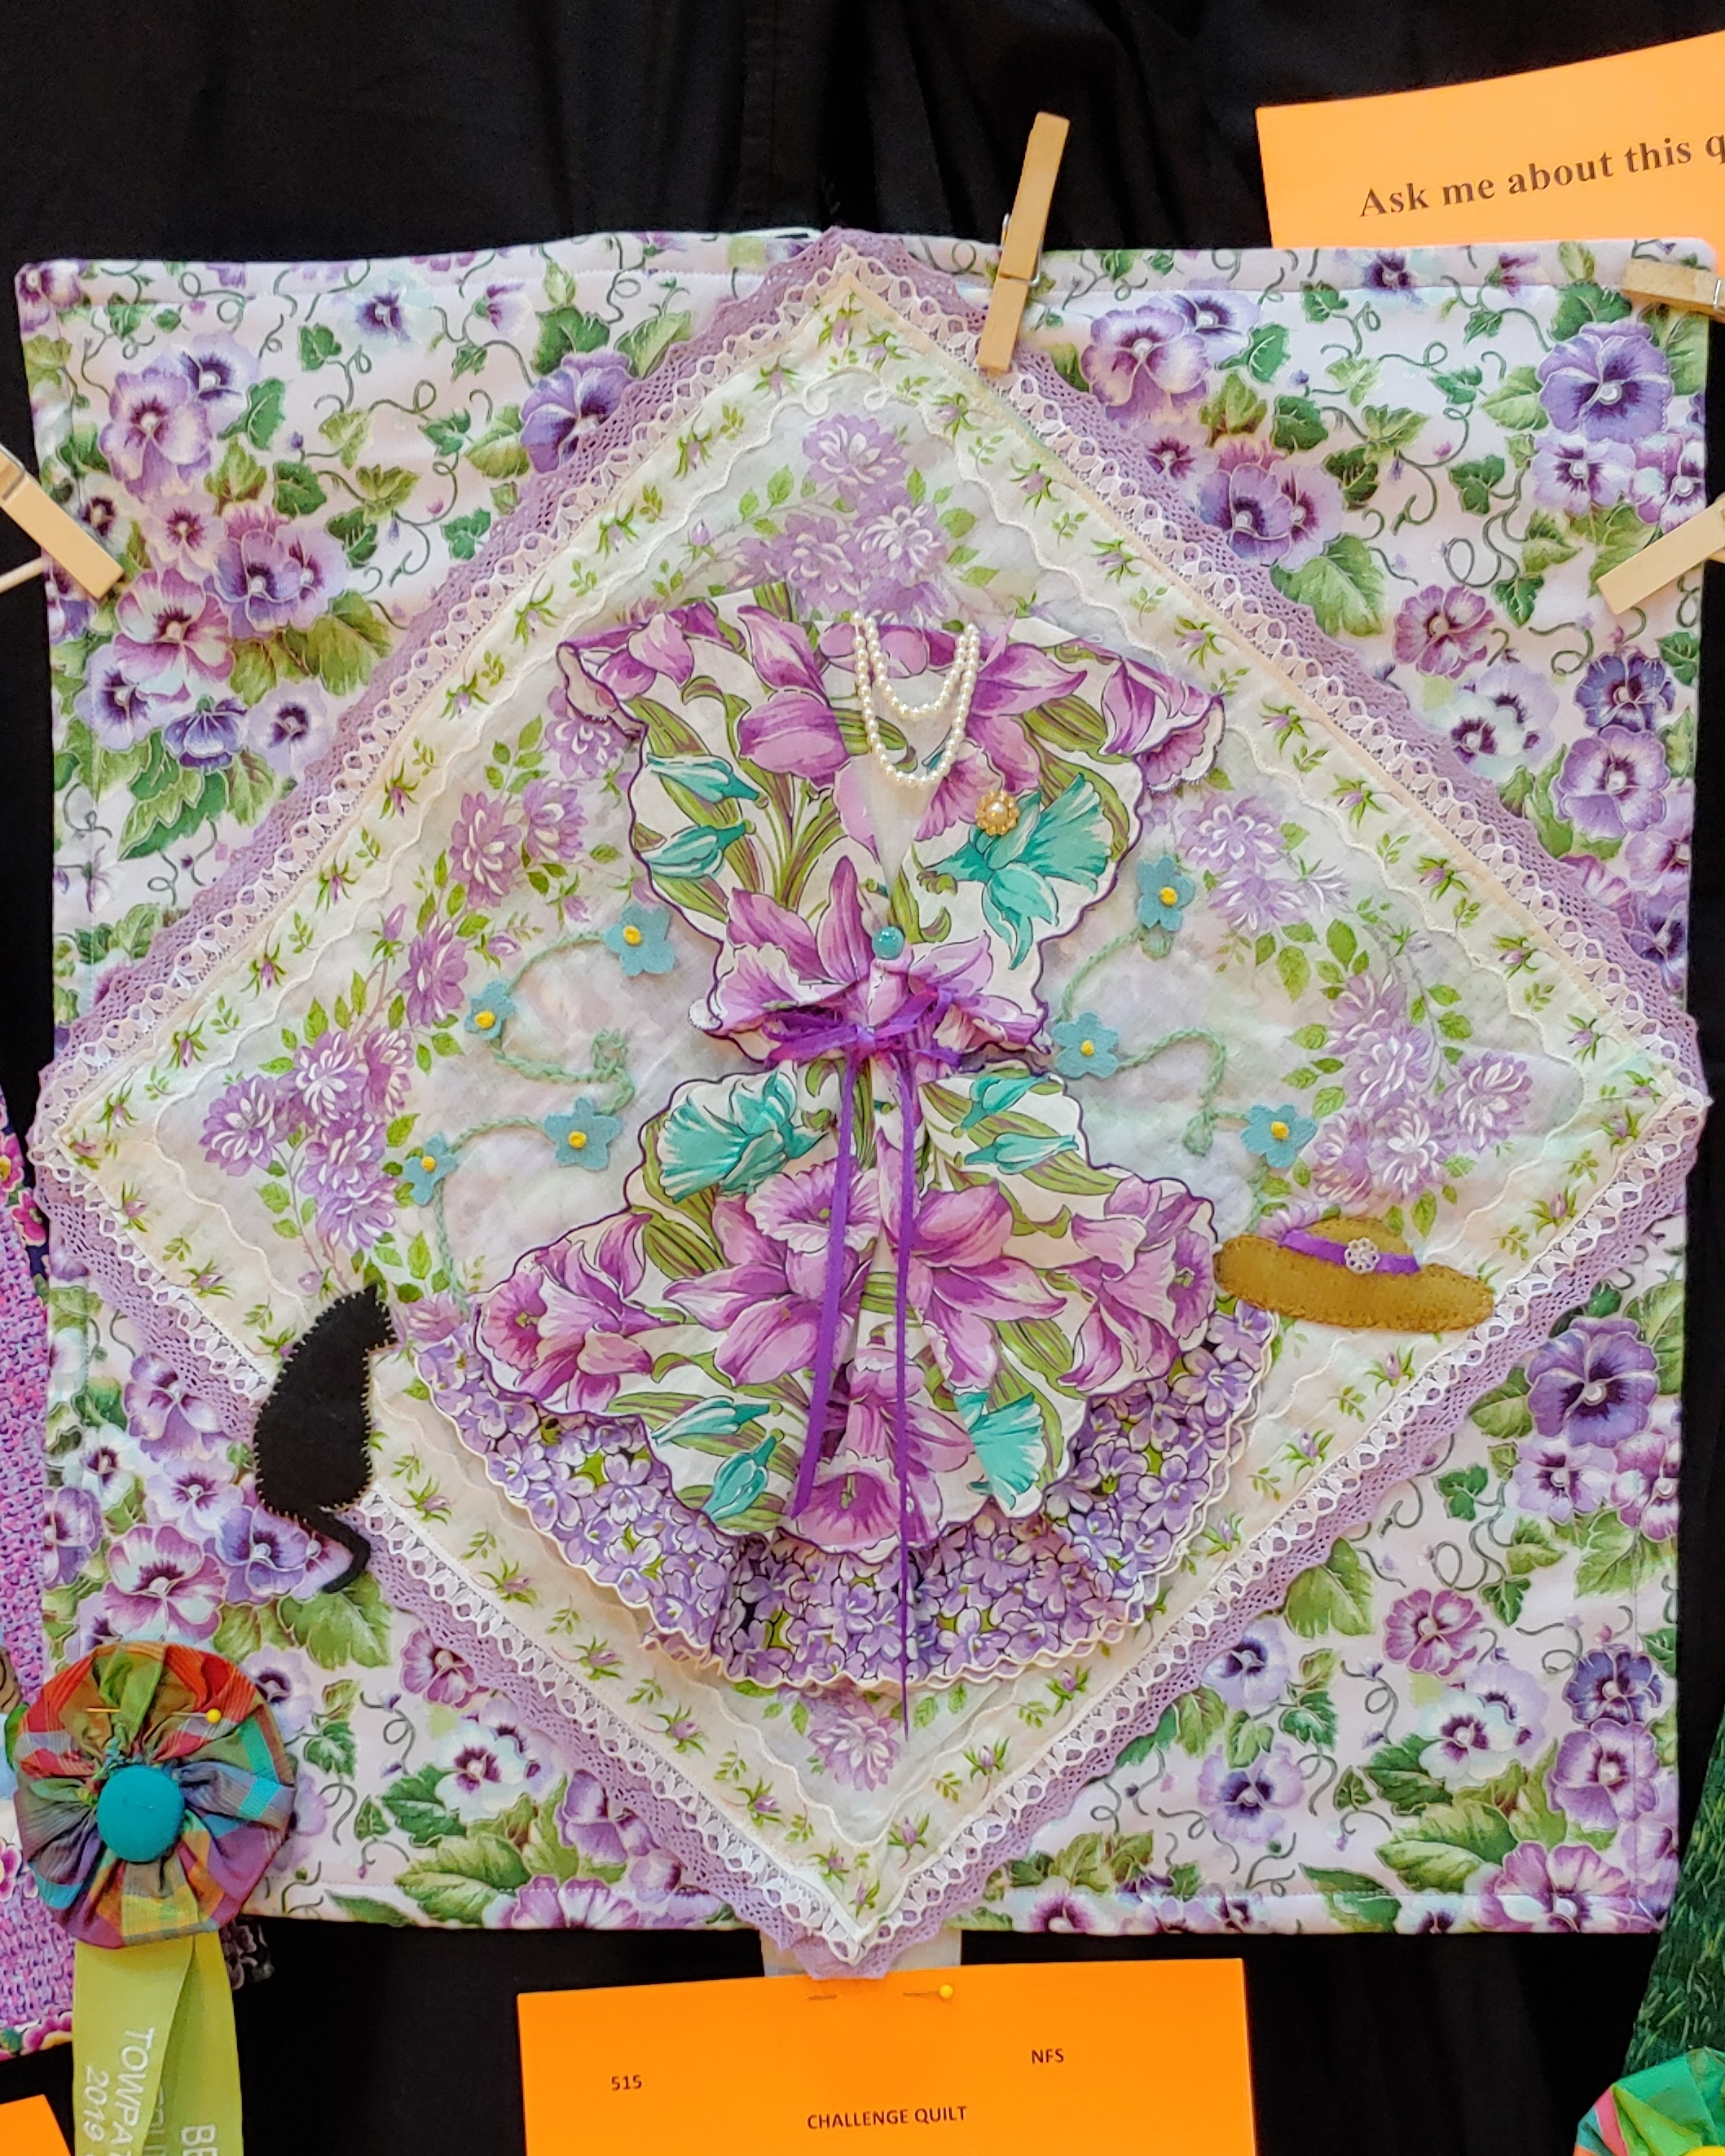 2019 Challenge Quilt Best Use of Recycled Fabric.jpg